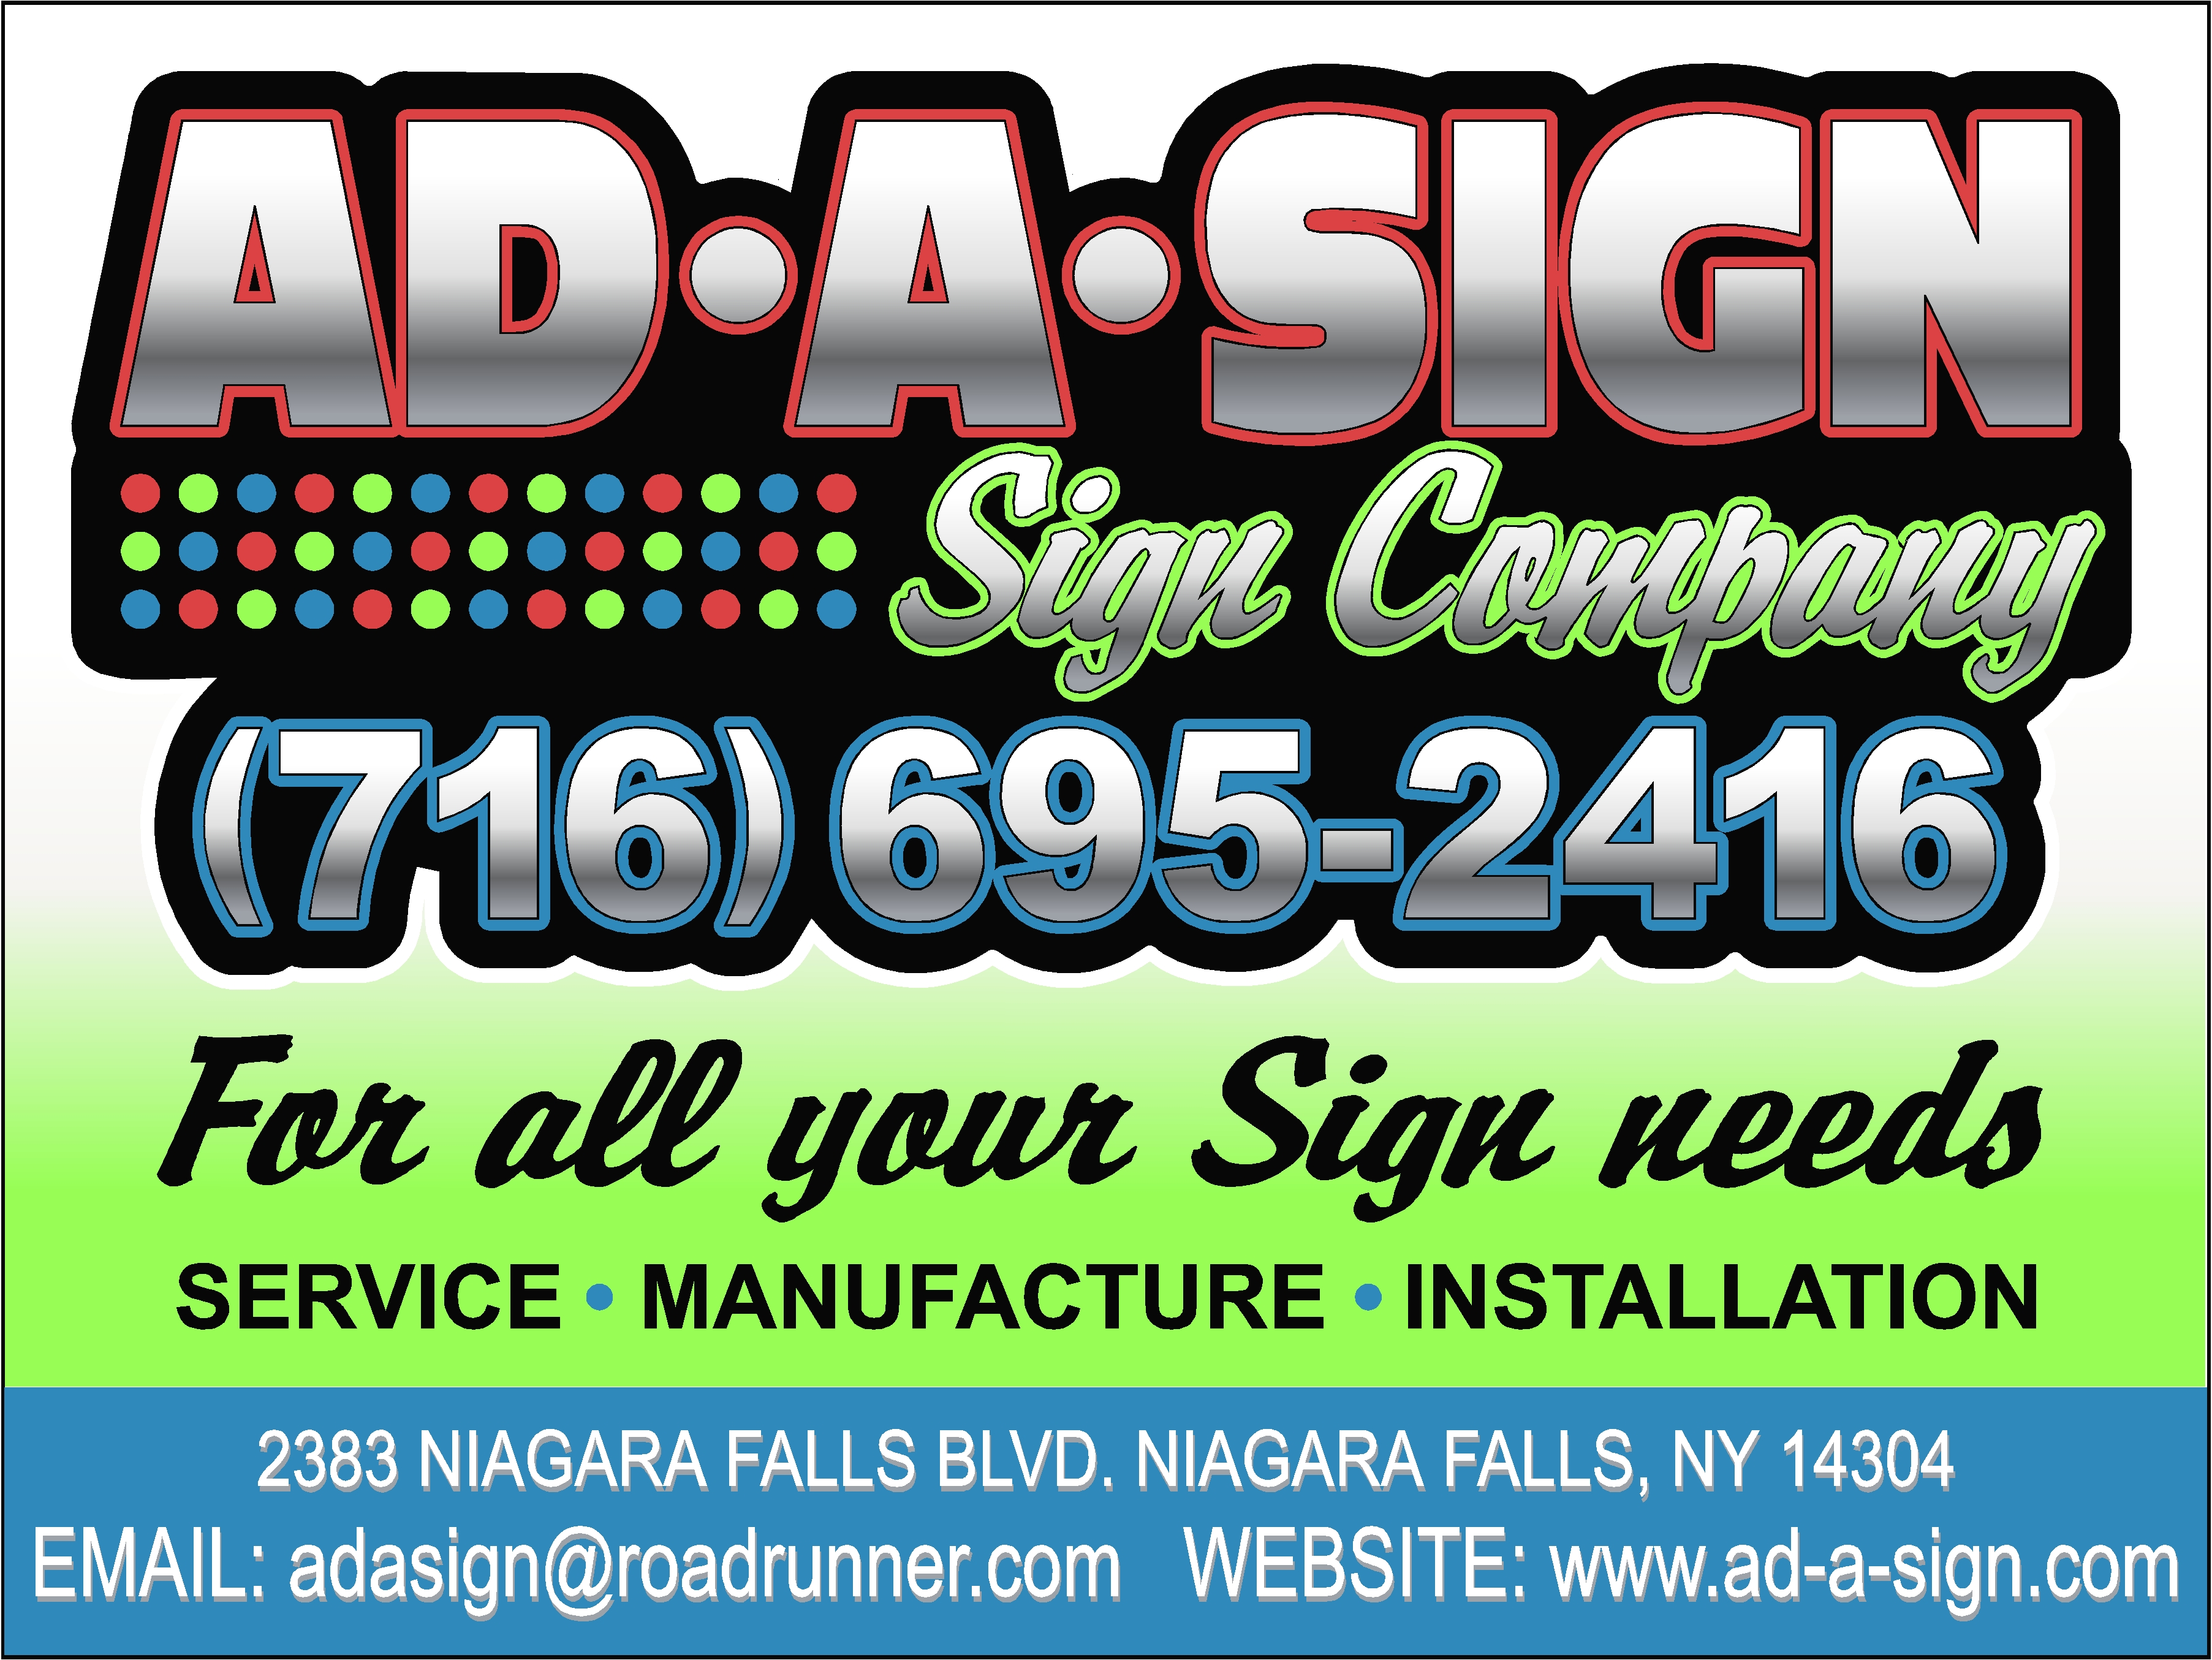 adasignfor all your sign needs